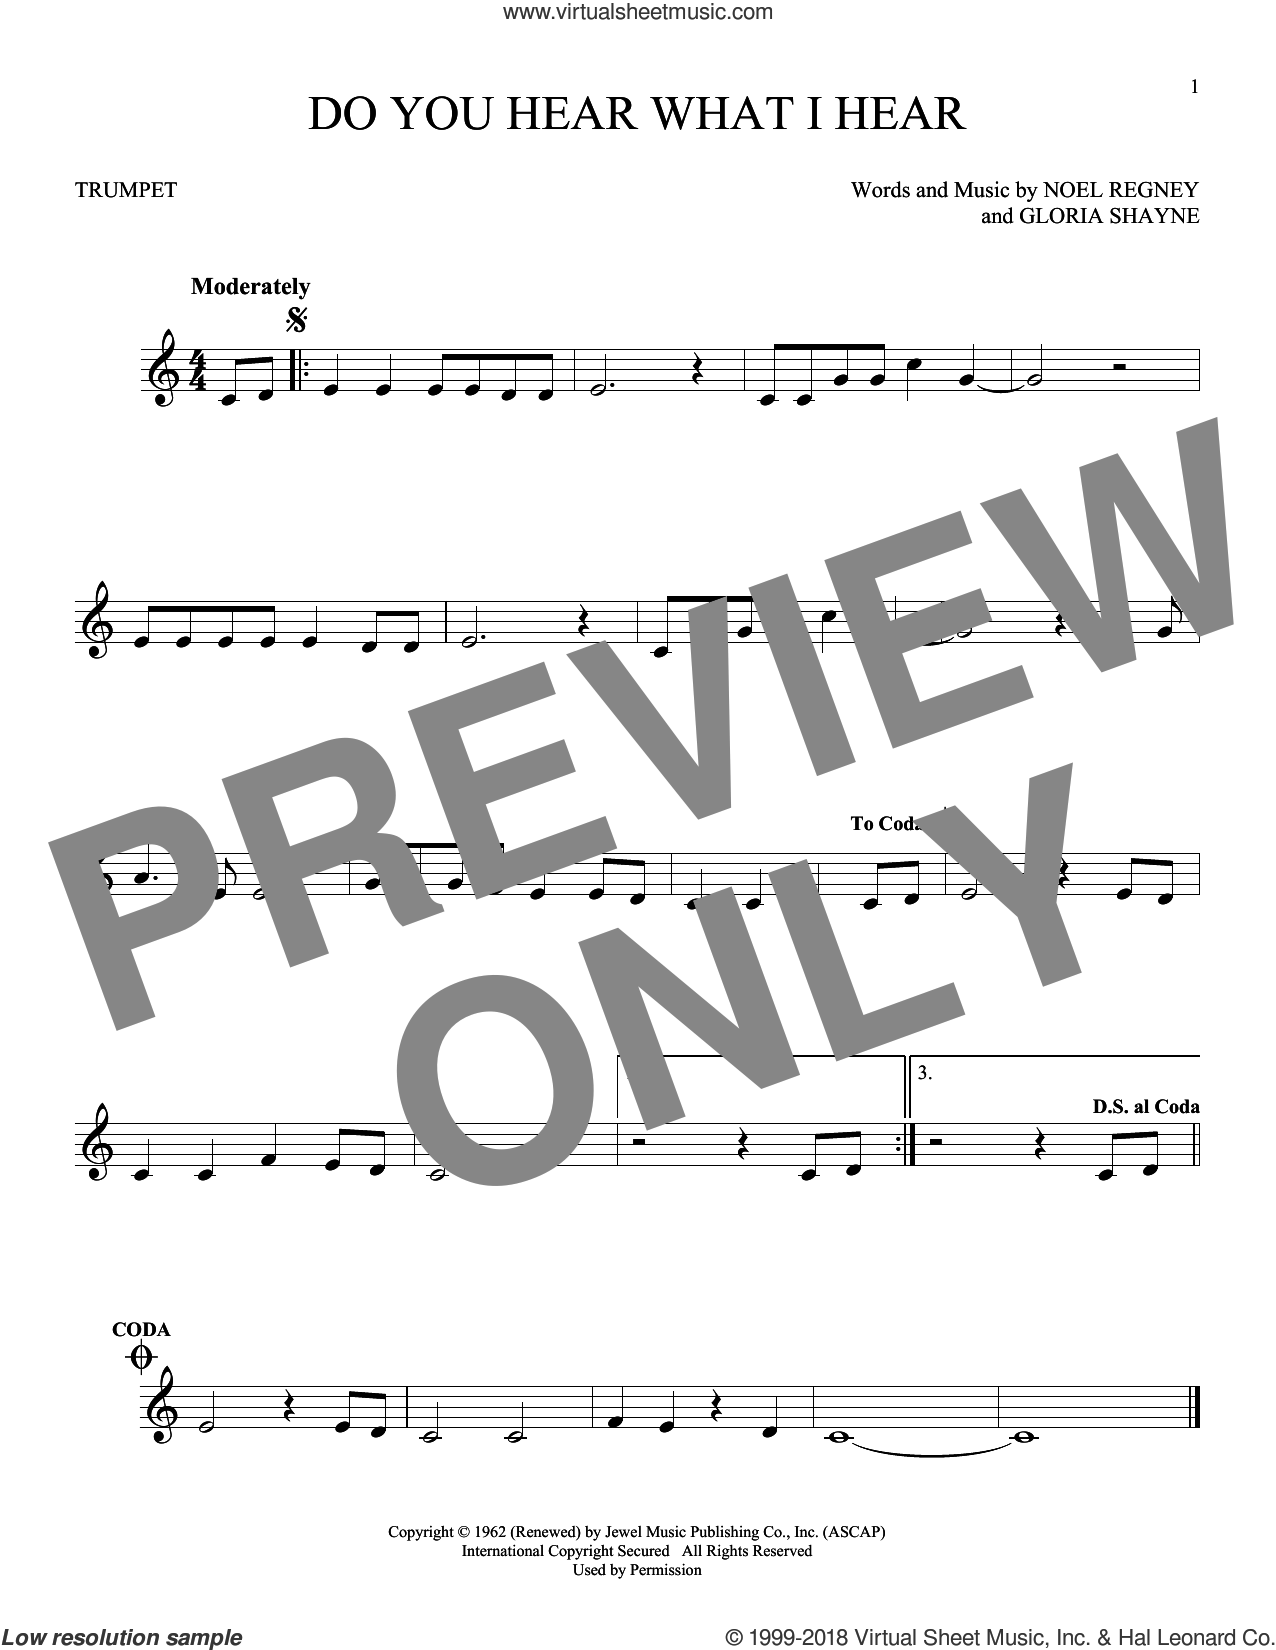 Do You Hear What I Hear sheet music for trumpet solo by Gloria Shayne, Carole King, Carrie Underwood, Susan Boyle feat. Amber Stassi, Noel Regney and Noel Regney & Gloria Shayne, intermediate skill level